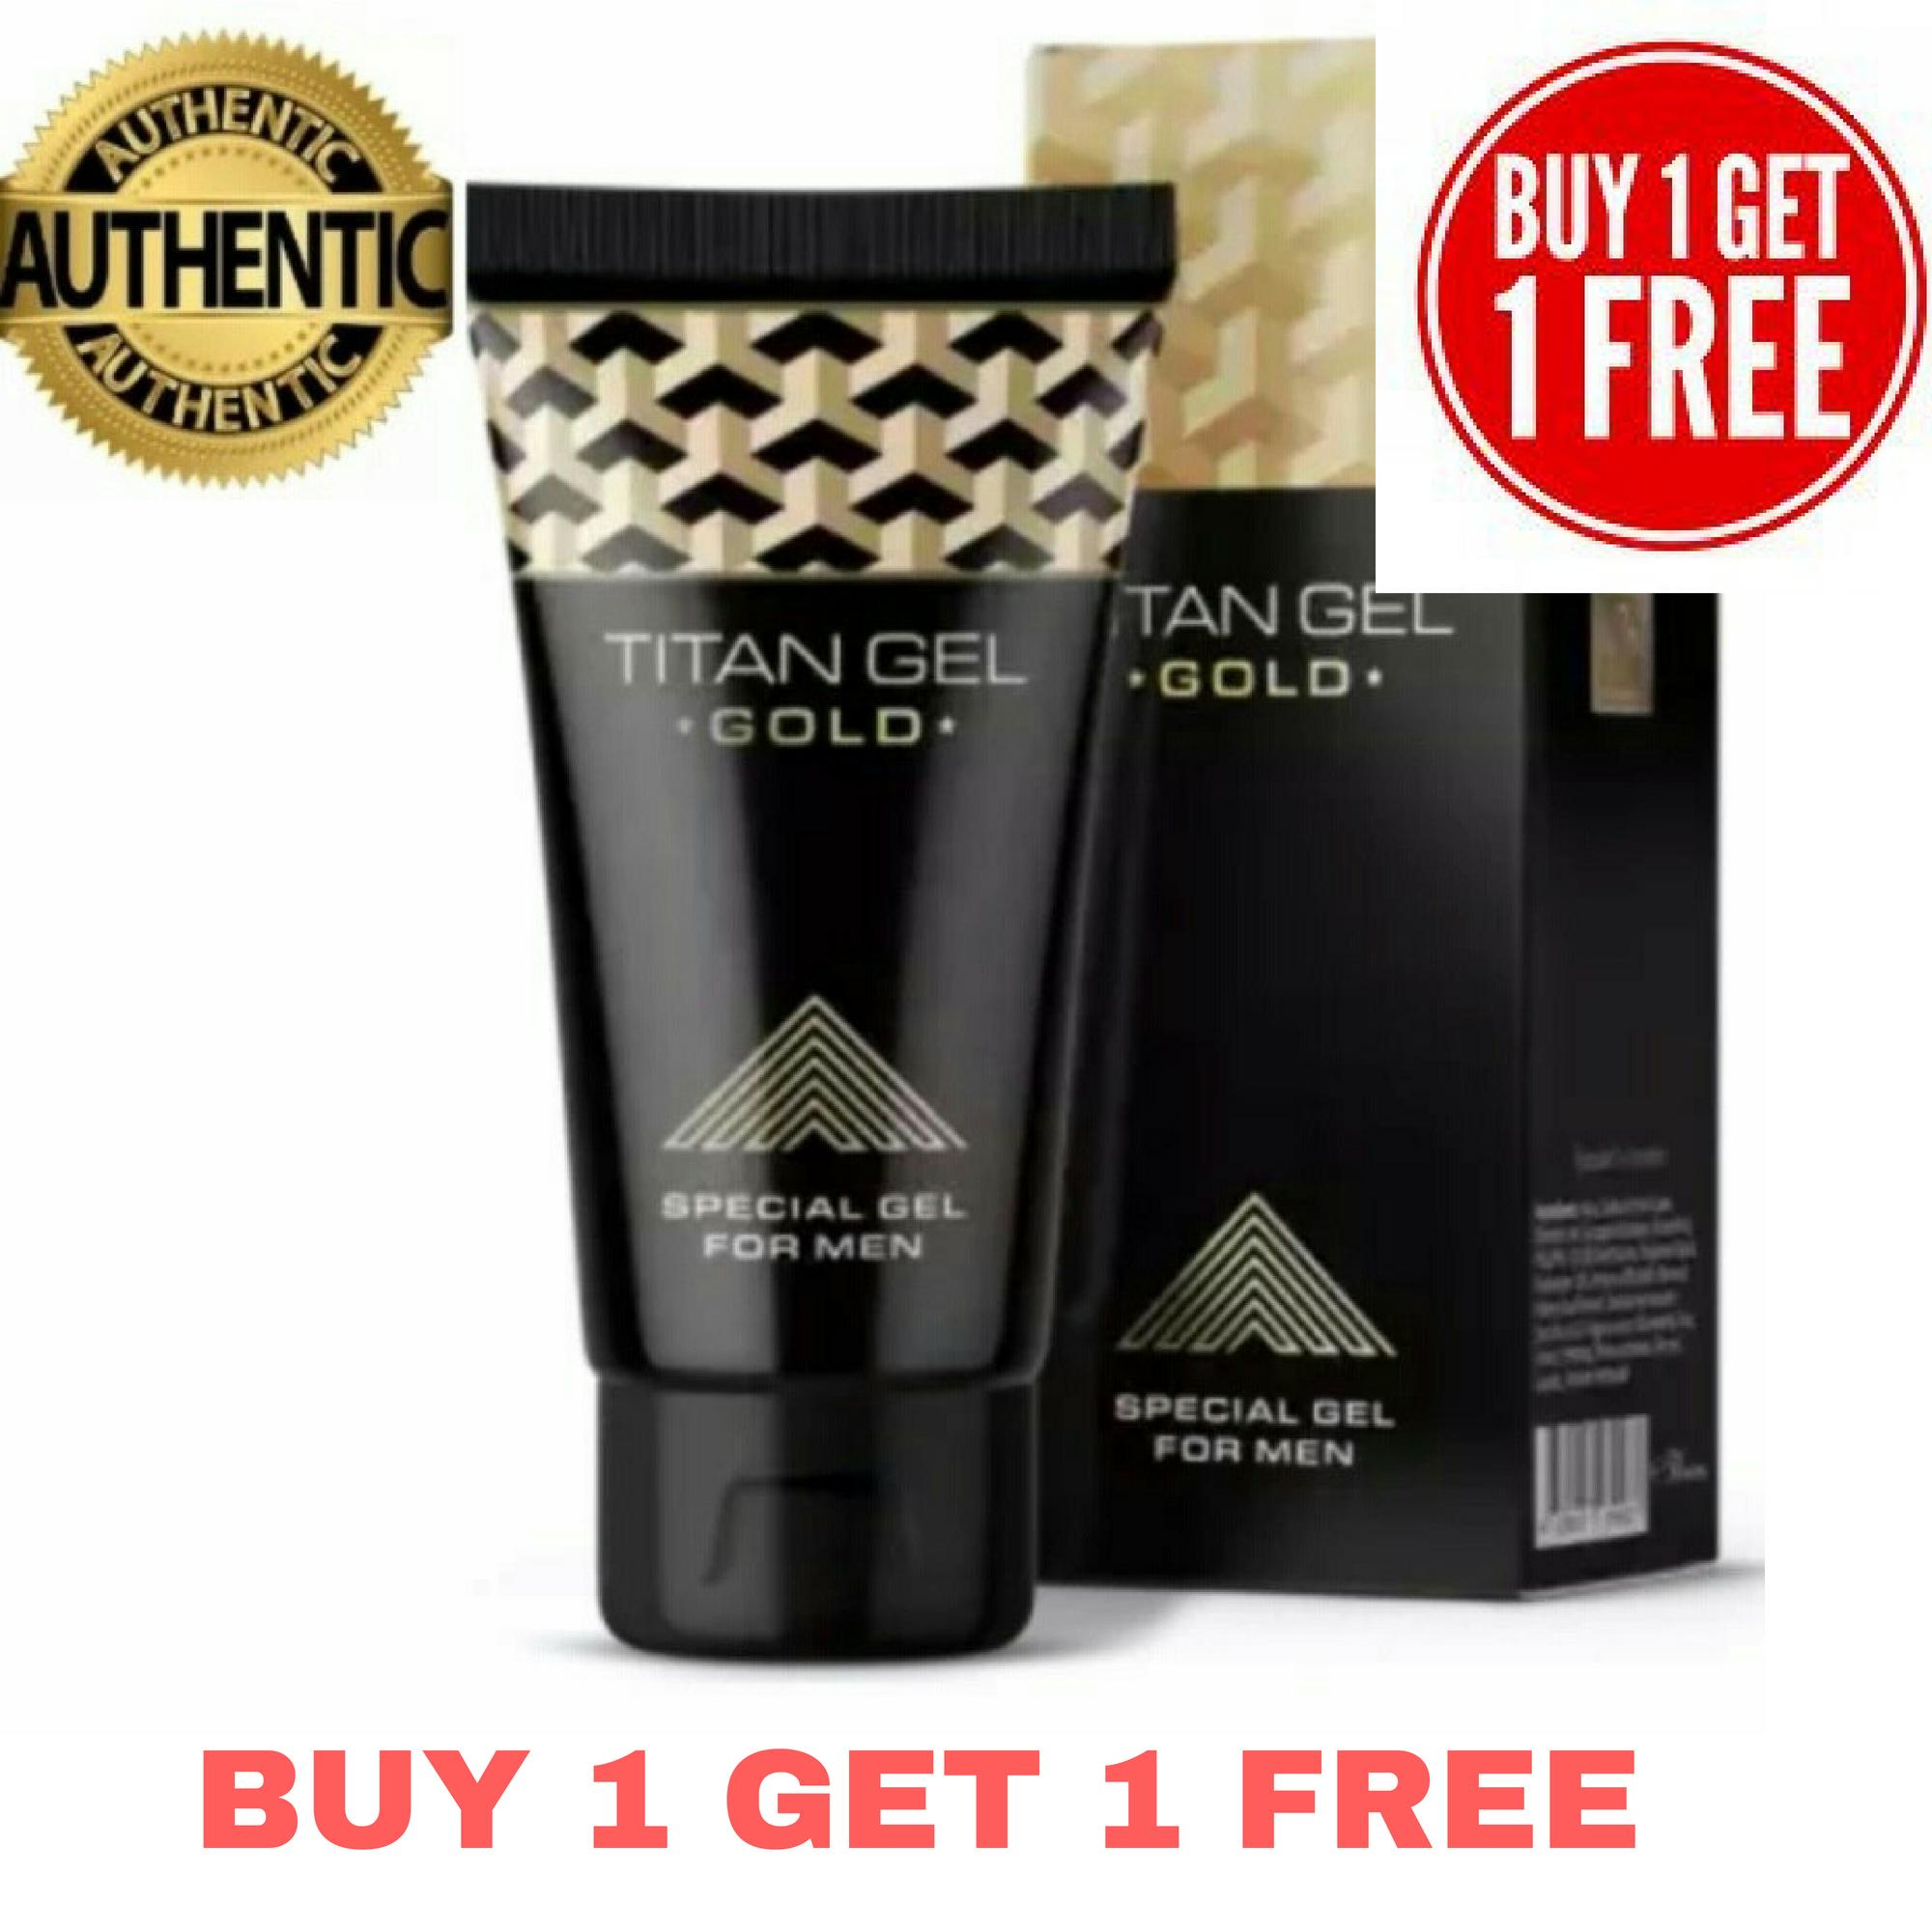 Authentic Titan Gel Gold For Men(buy 1 Get 1 Free) By Aj Wellness Supply.